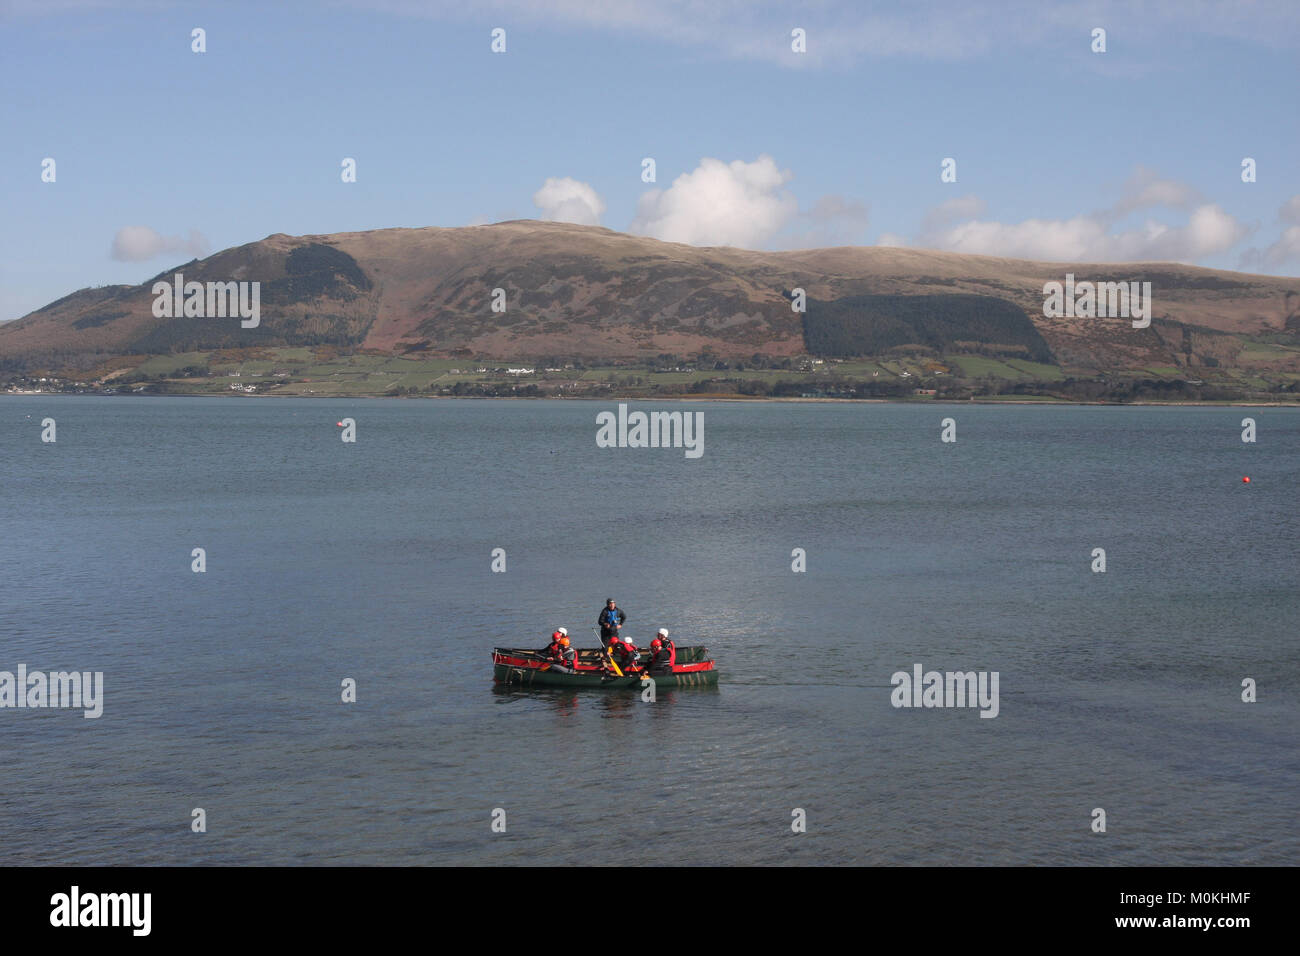 Children kayaking at Carlingford Lough, Carlingford, County Louth Ireland. The activity is one of several activities - Stock Image